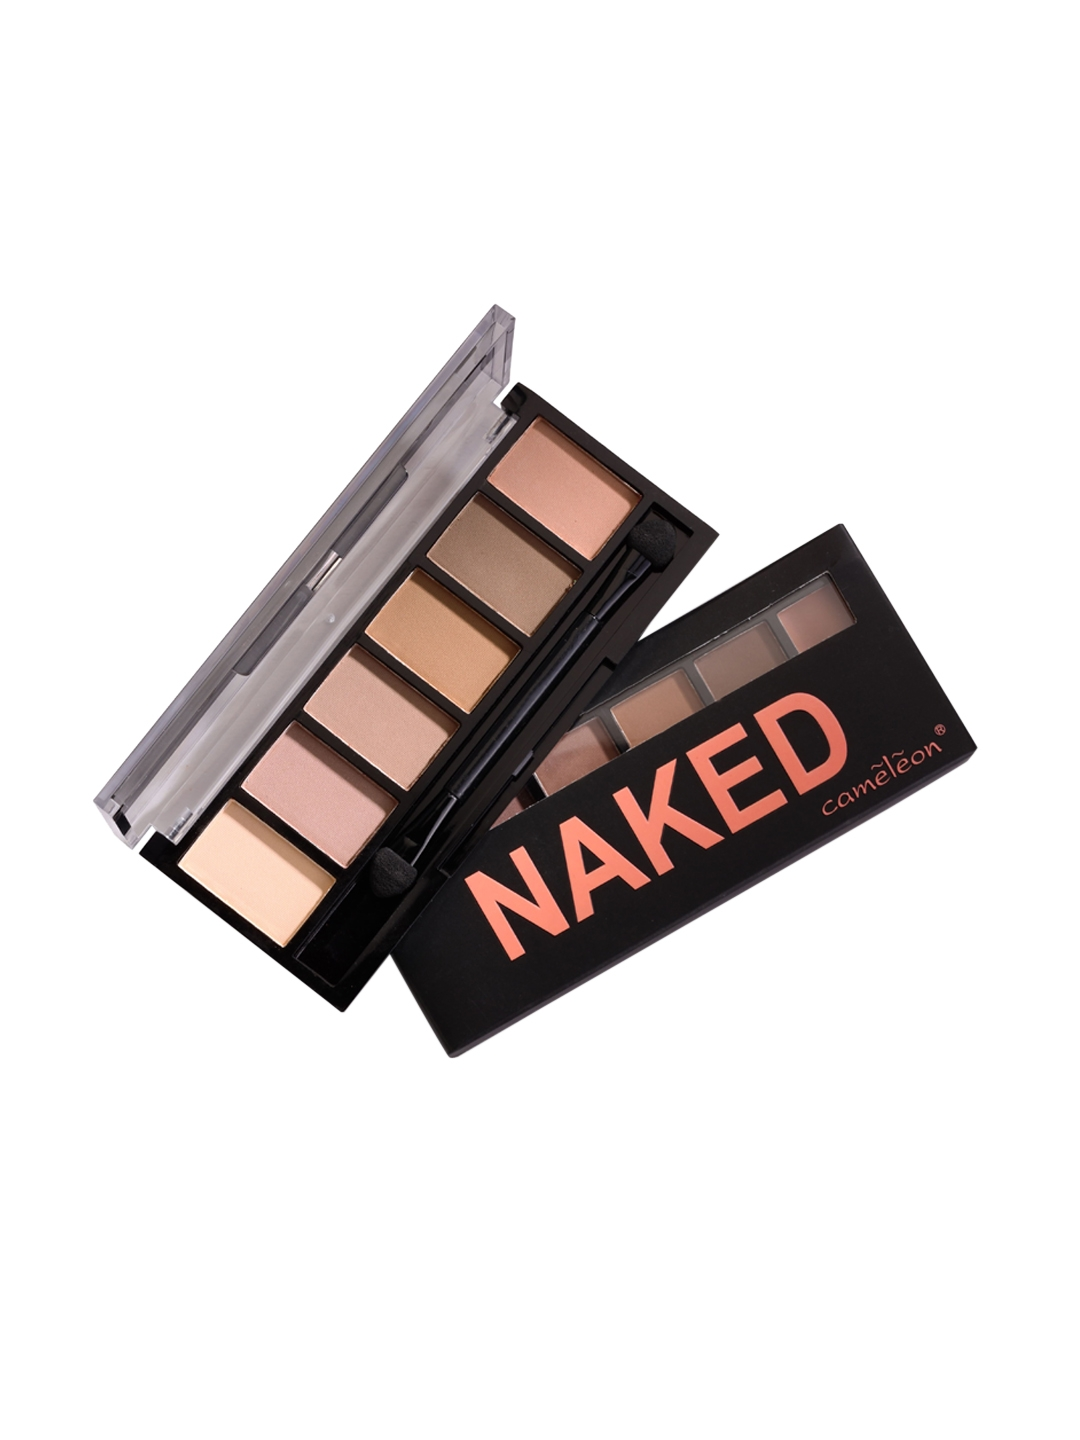 Cameleon 6 in 1 Naked Eyeshadow Palette With Brush